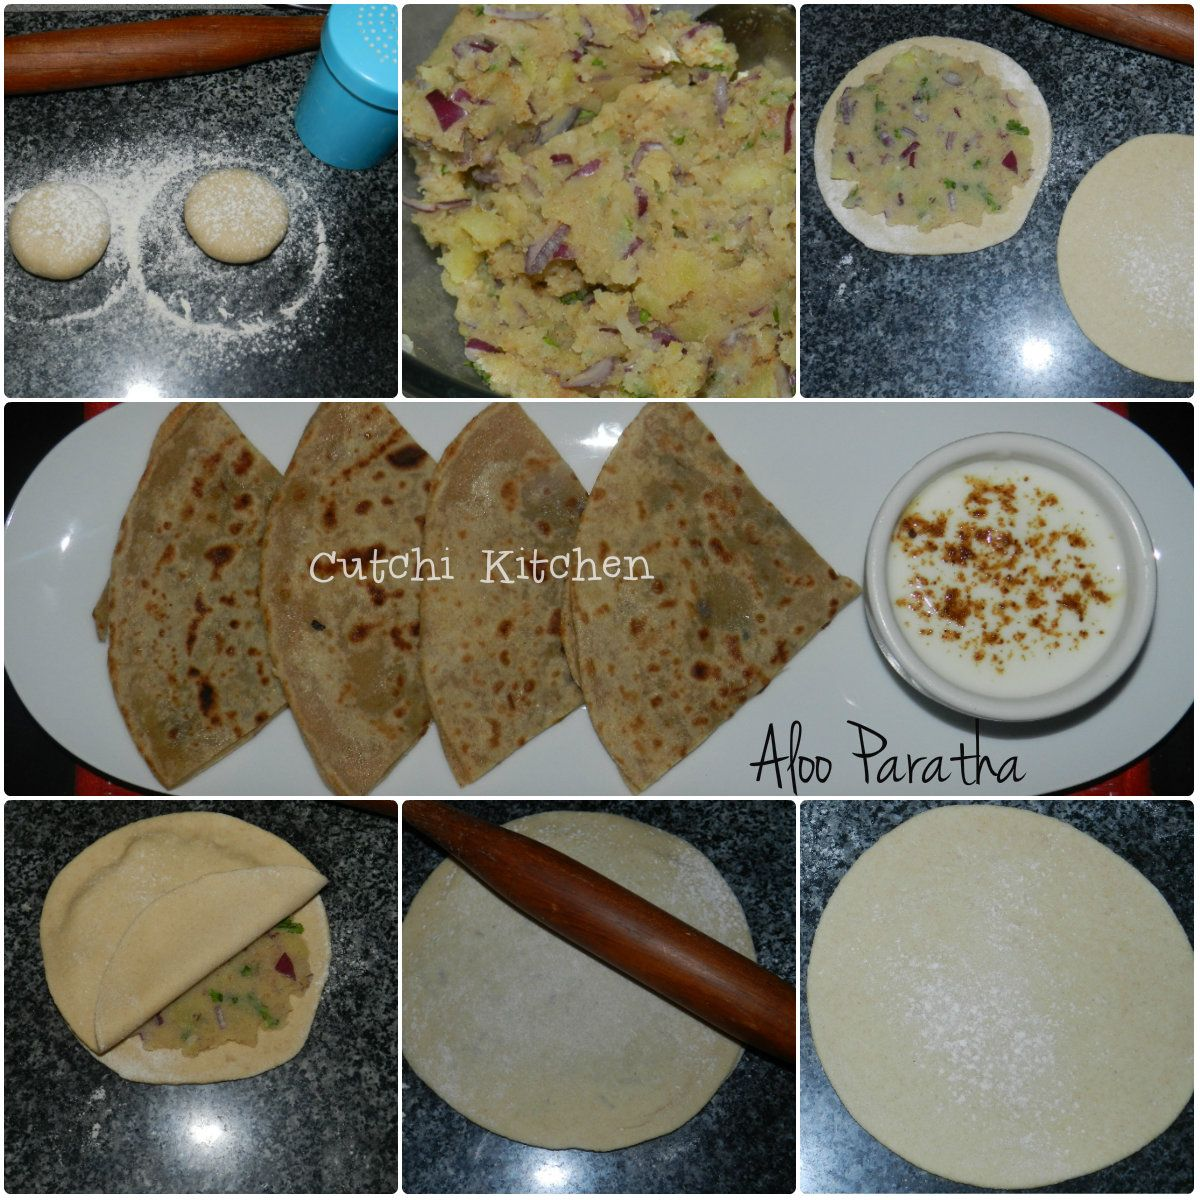 Step by step instructions to make a fool proof stuffed aloo paratha step by step instructions to make a fool proof stuffed aloo paratha indian recipeslunch forumfinder Image collections